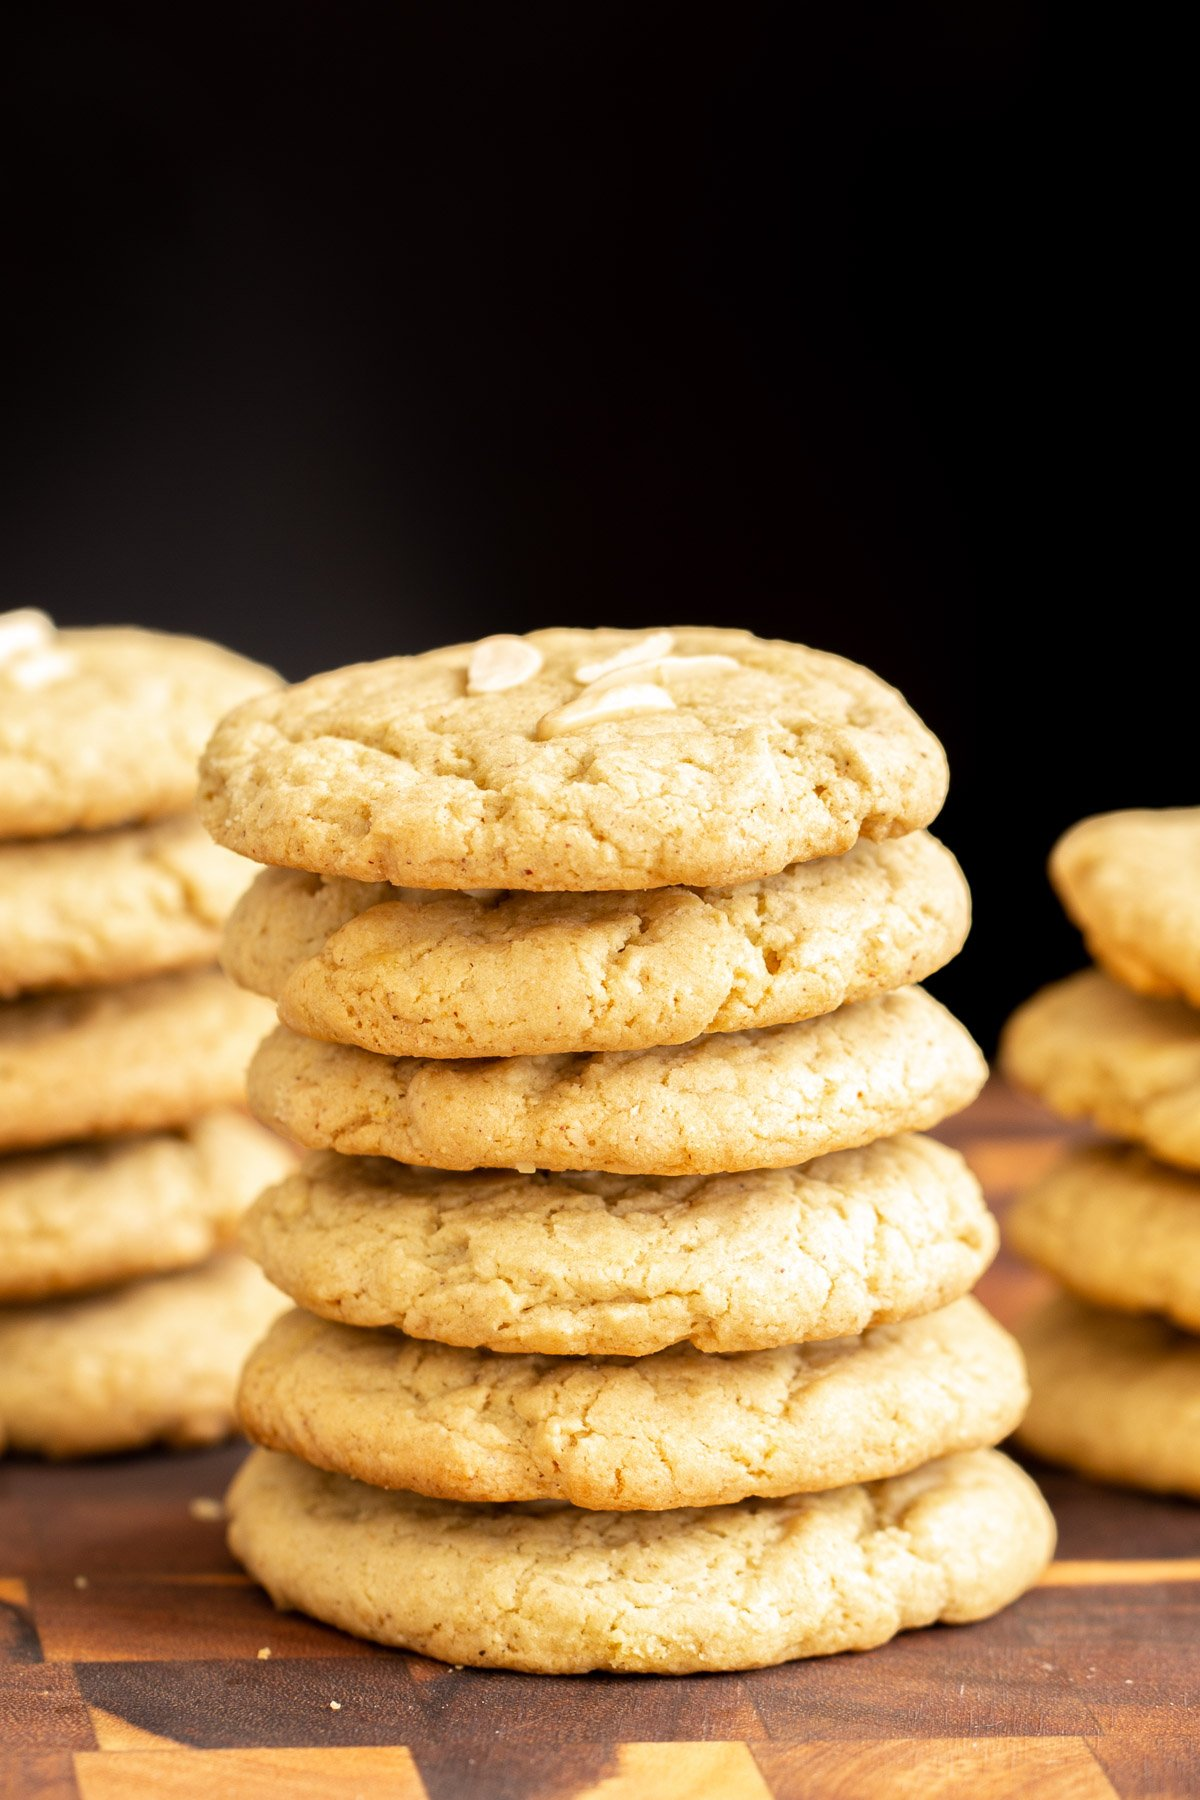 side view of a stack of vegan almond pistachio cookies on a wooden board